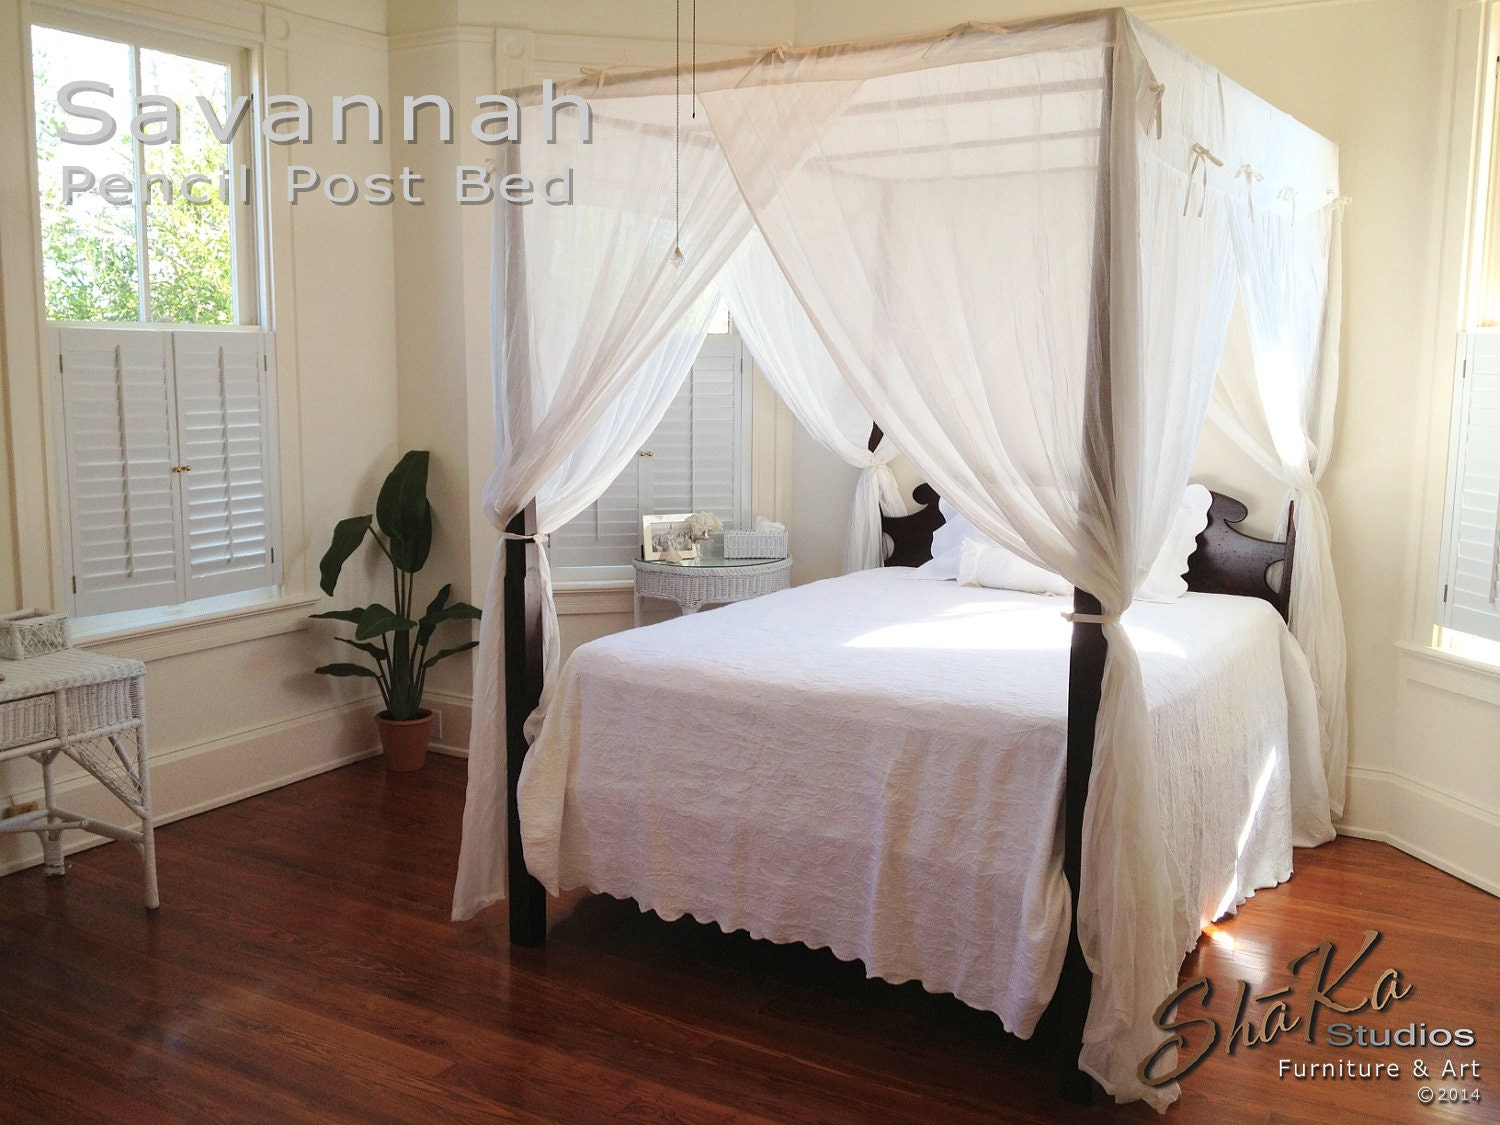 Savannah King Size Pencil Post Canopy Bed By Shakastudios